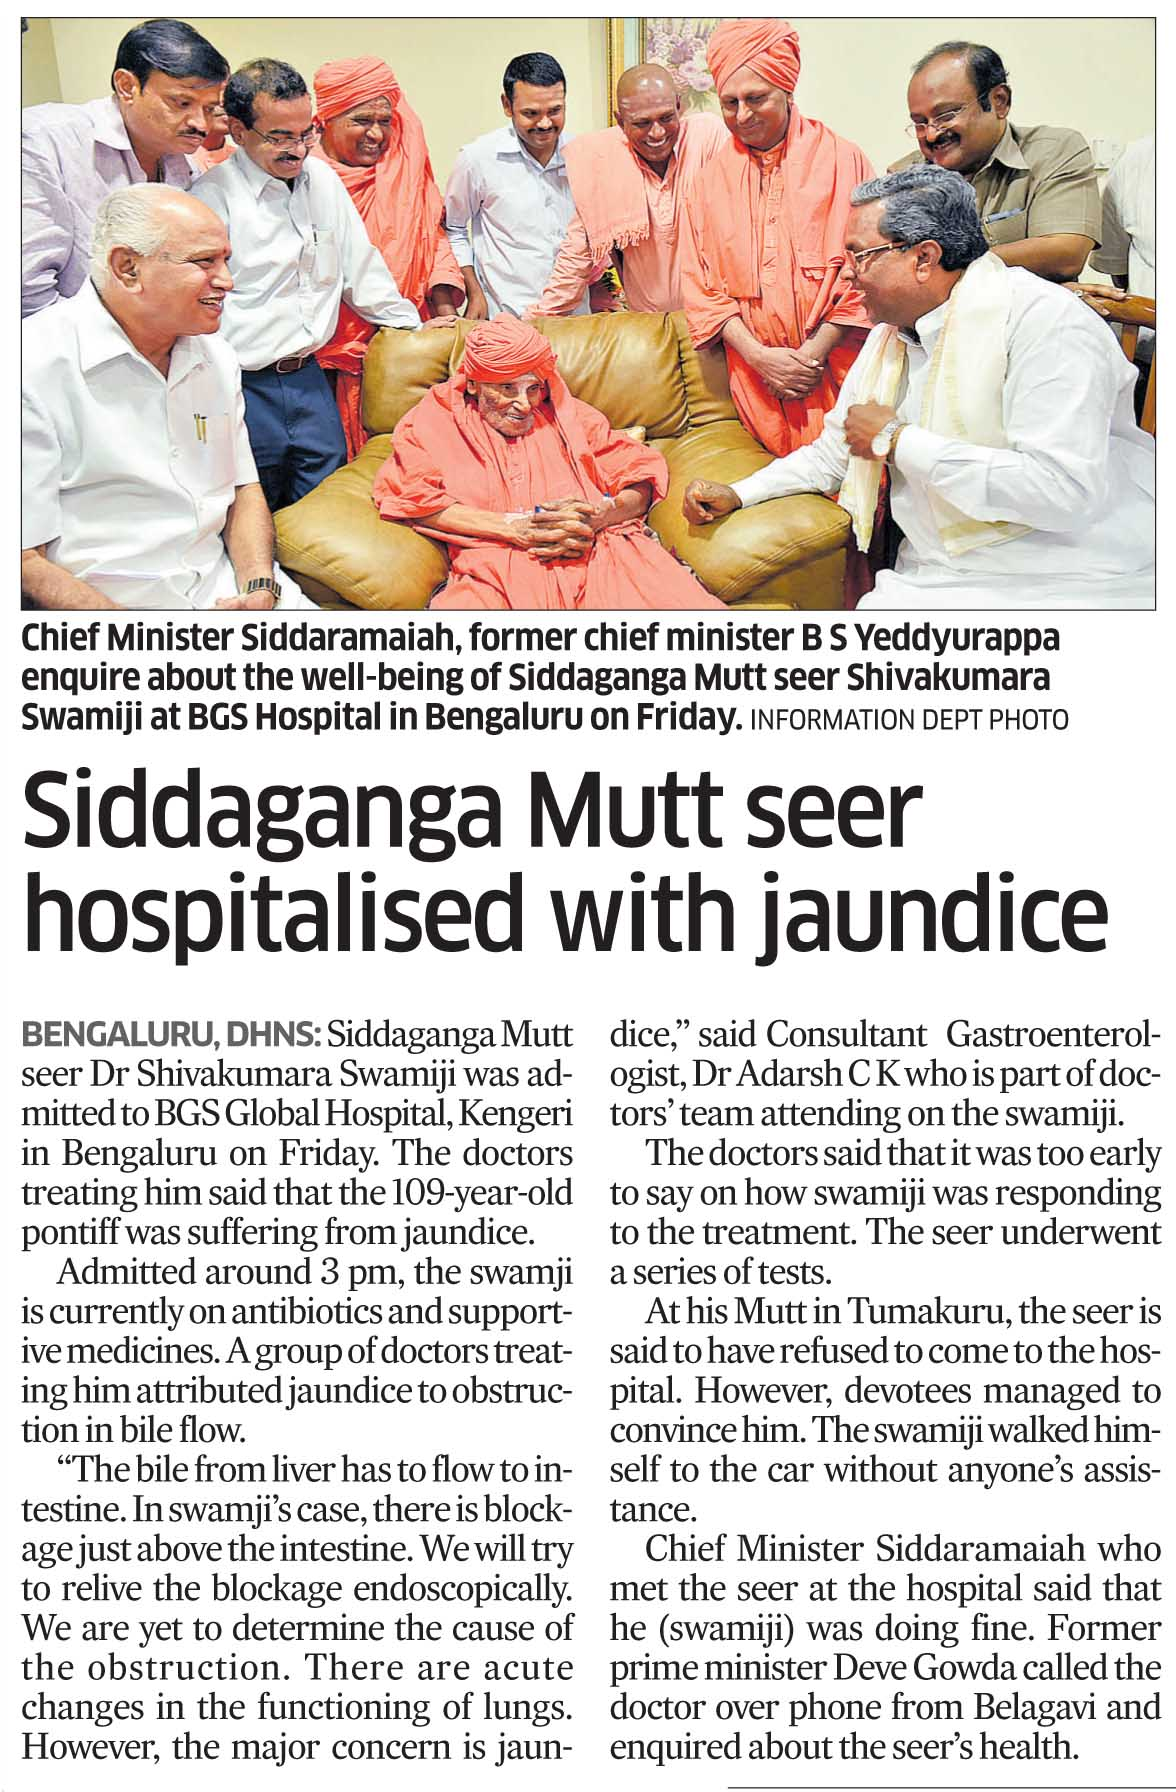 Sddaganga Matt seer hospitalised with jaundice